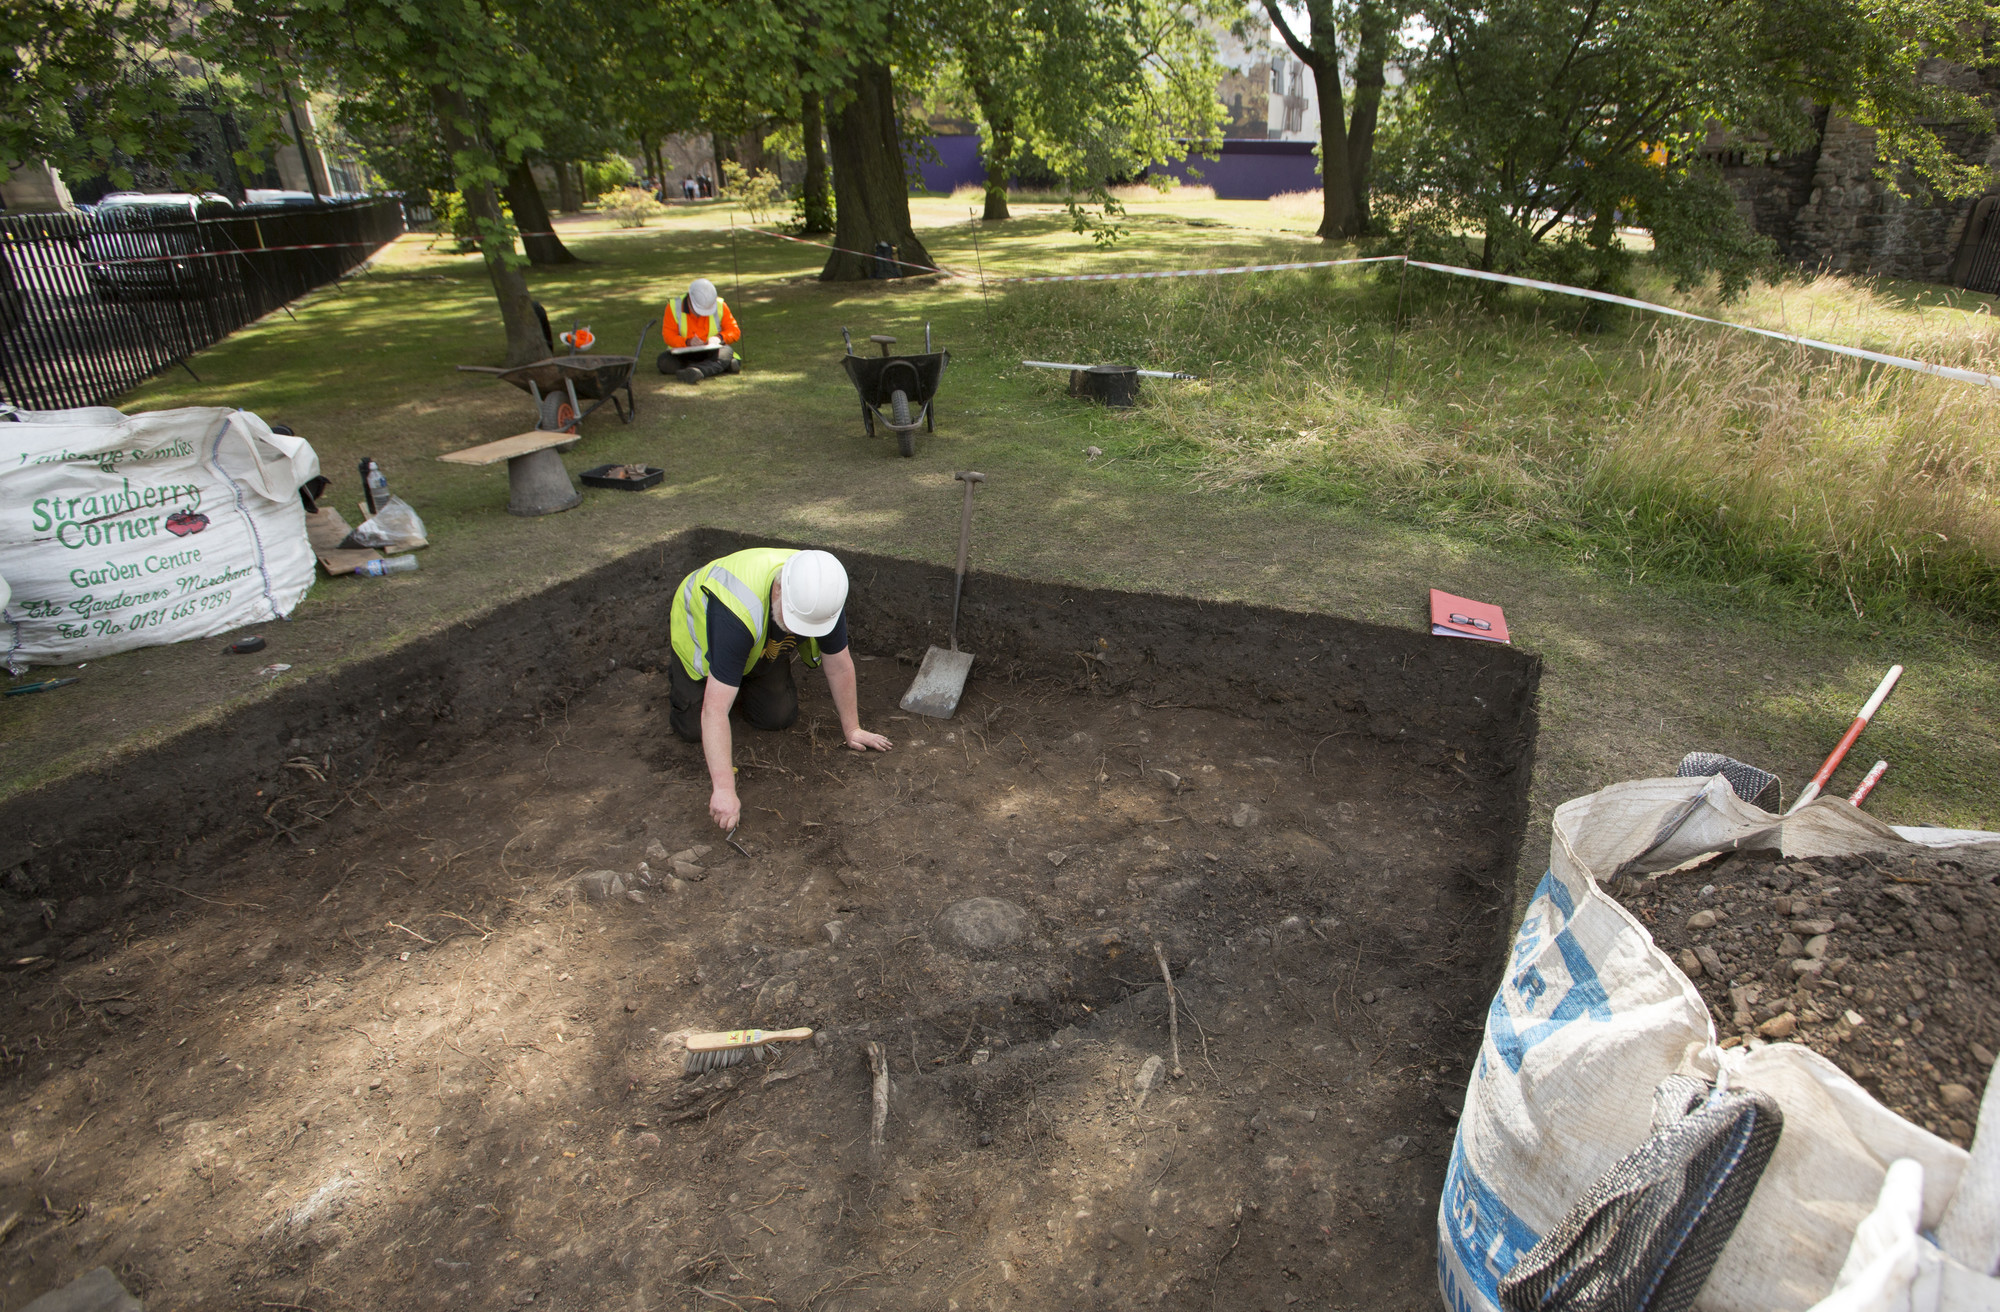 Archaeologists working at the Palace of Holyroodhouse